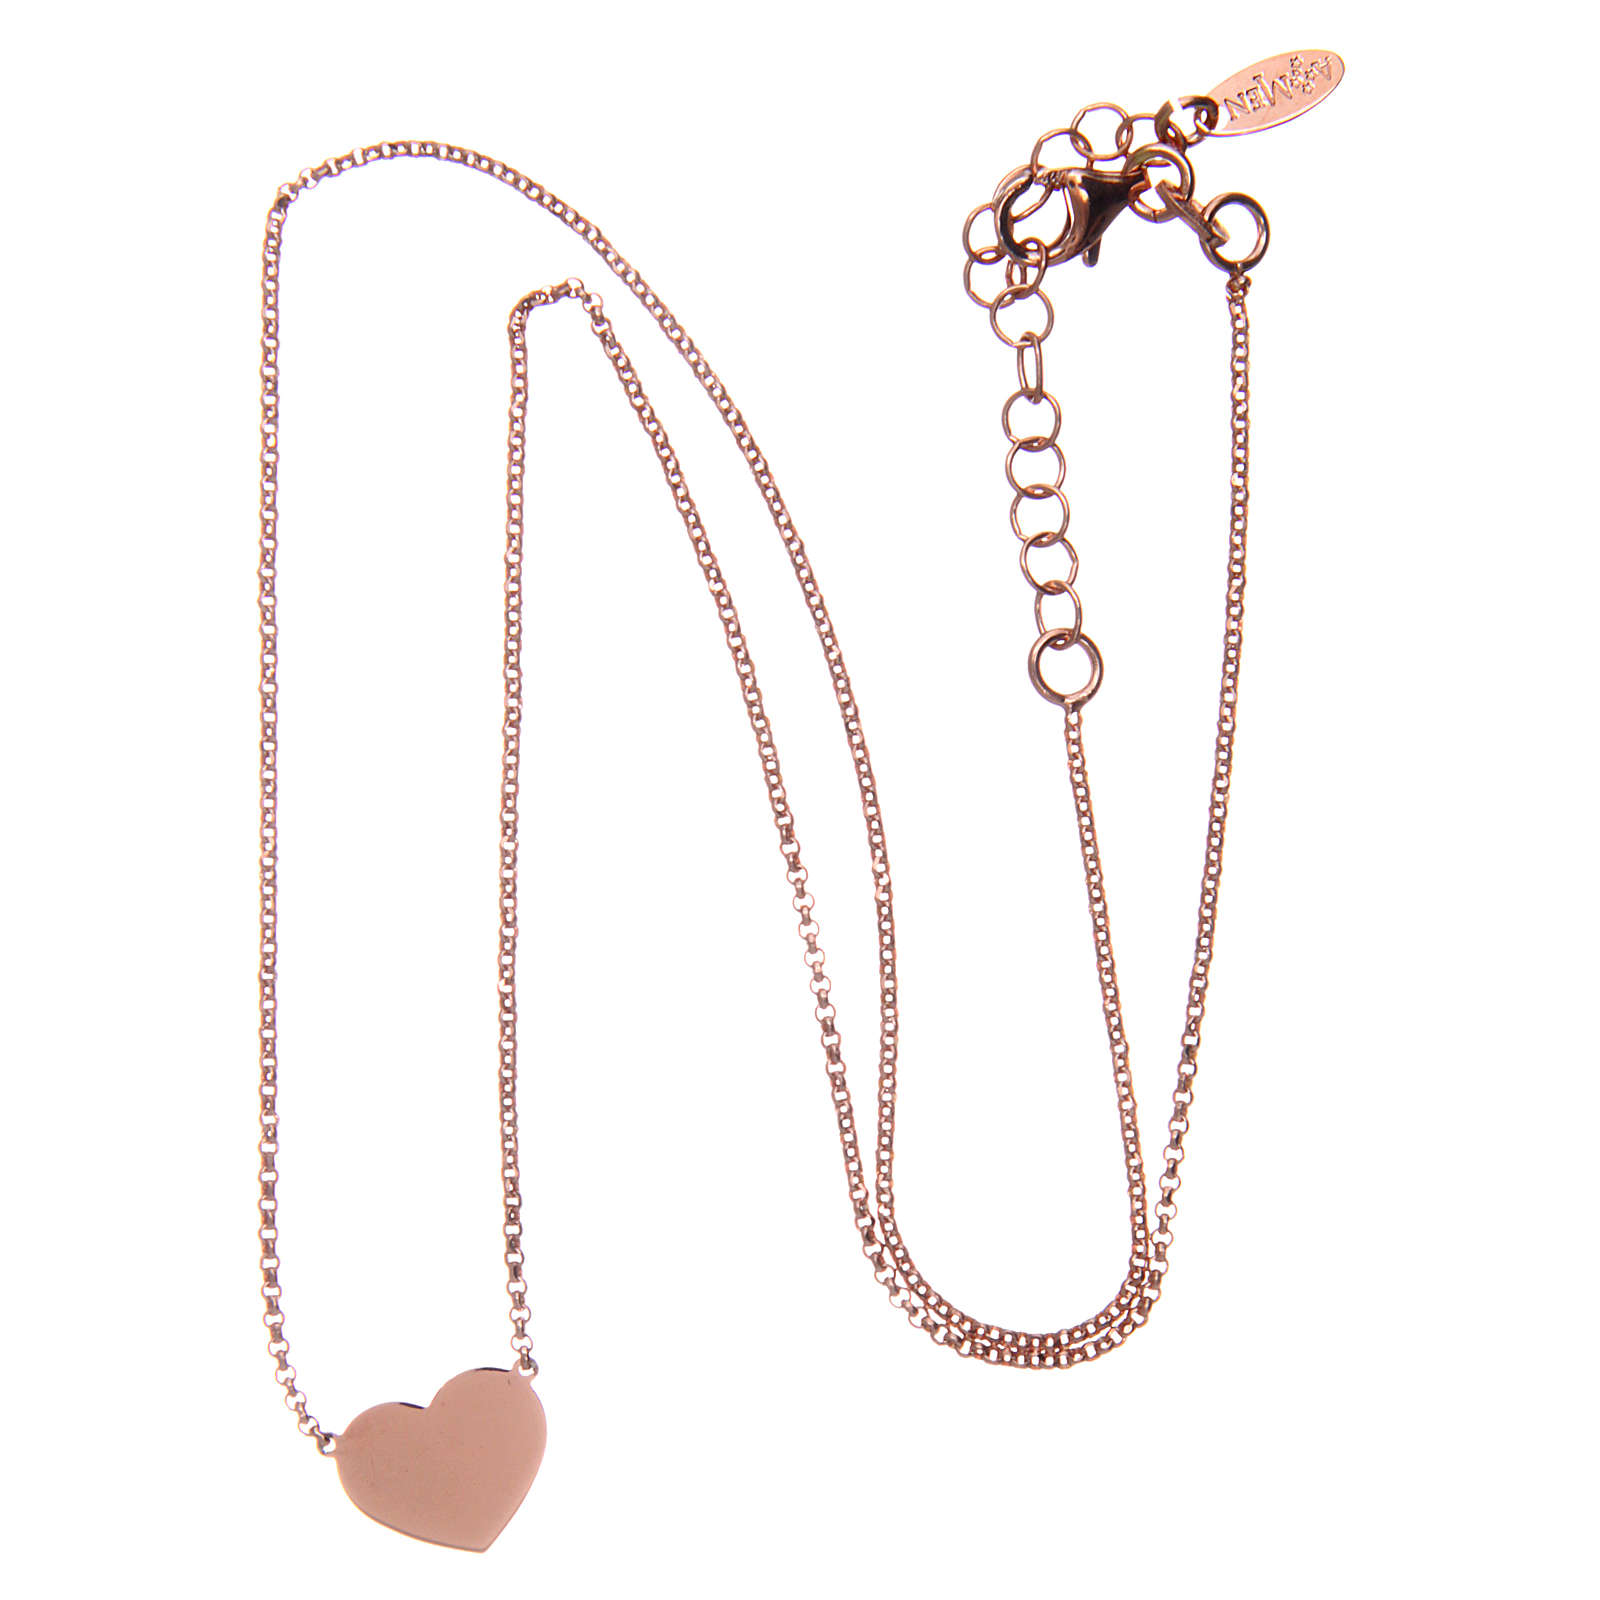 Necklace AMEN Heart silver 925 Rosè finish 4